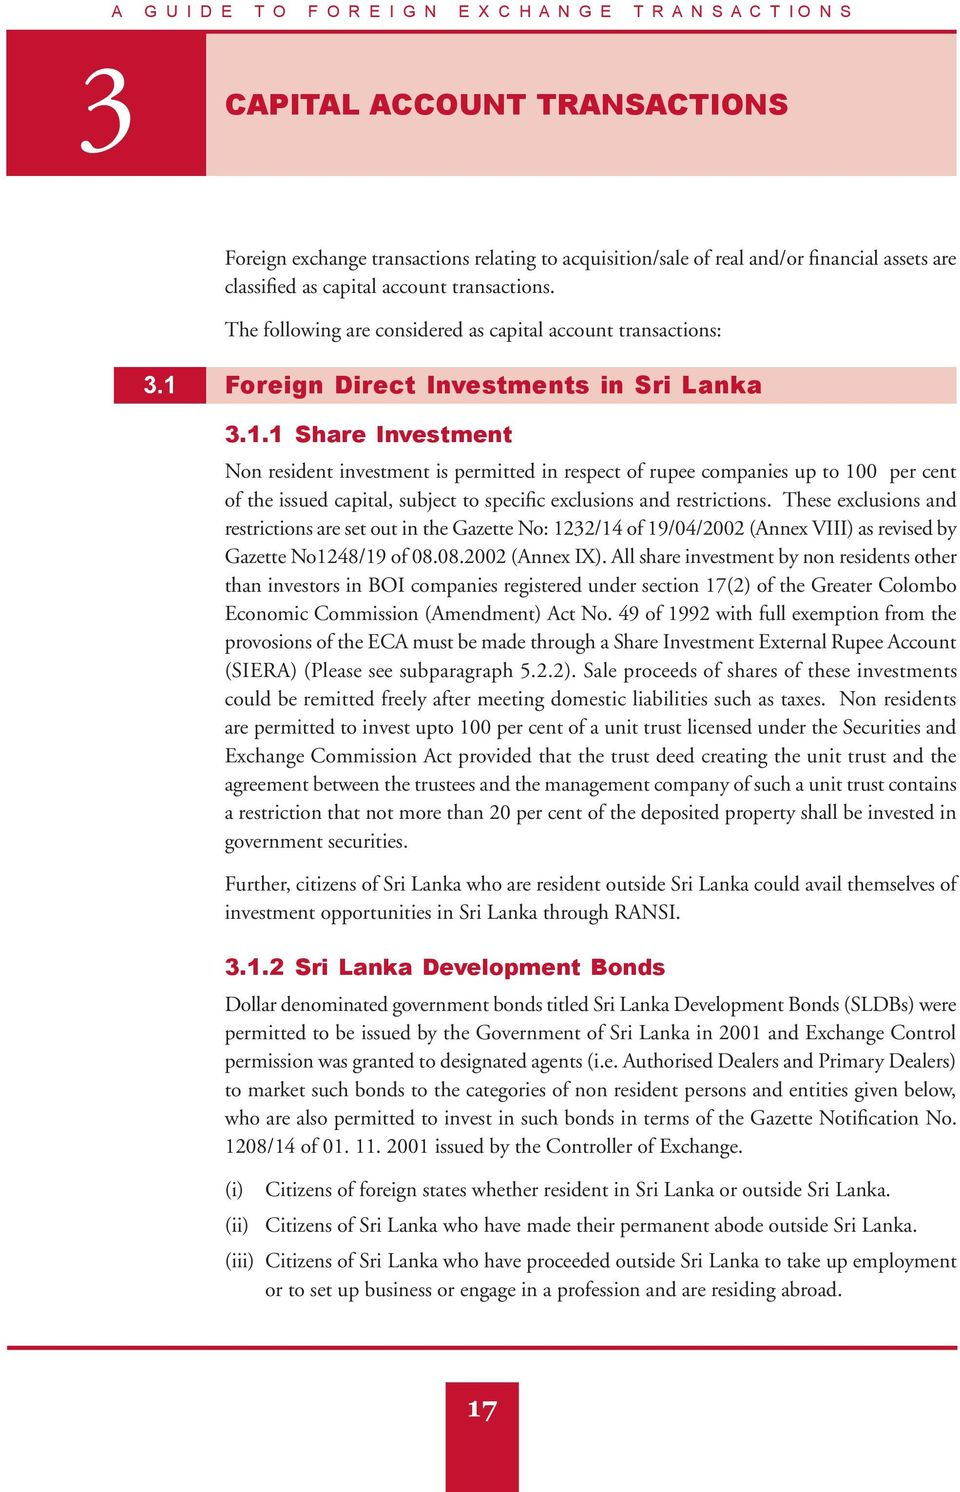 Foreign Direct Investments in Sri Lanka 3.1.